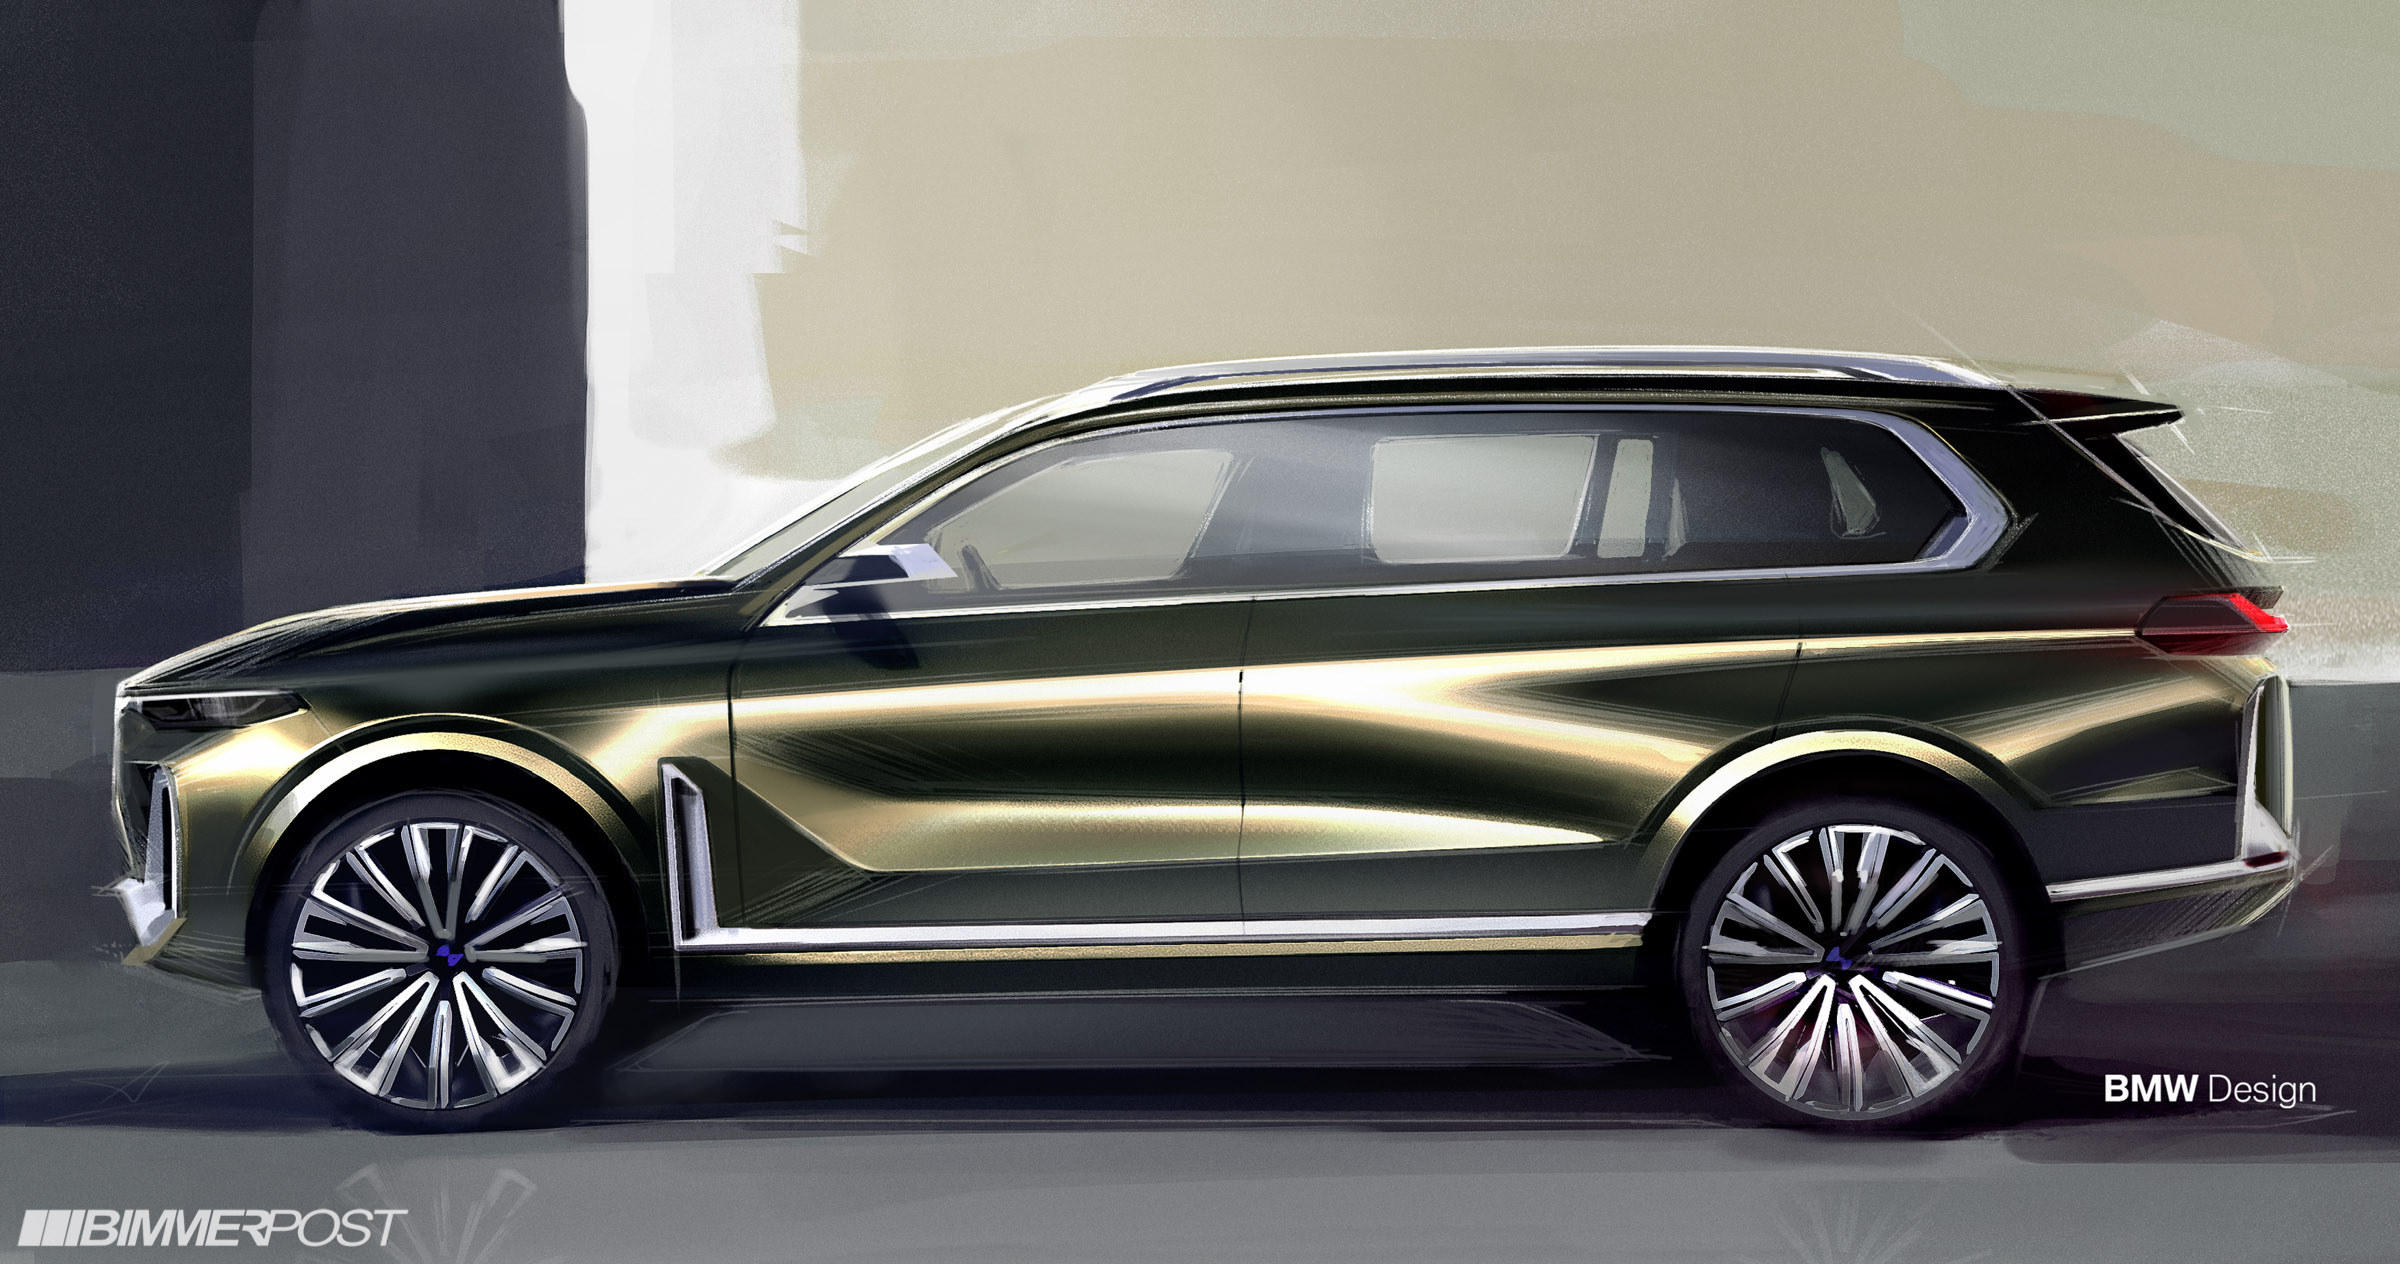 X8 Bmw >> BMW X7 iPerformance Concept Official Reveal